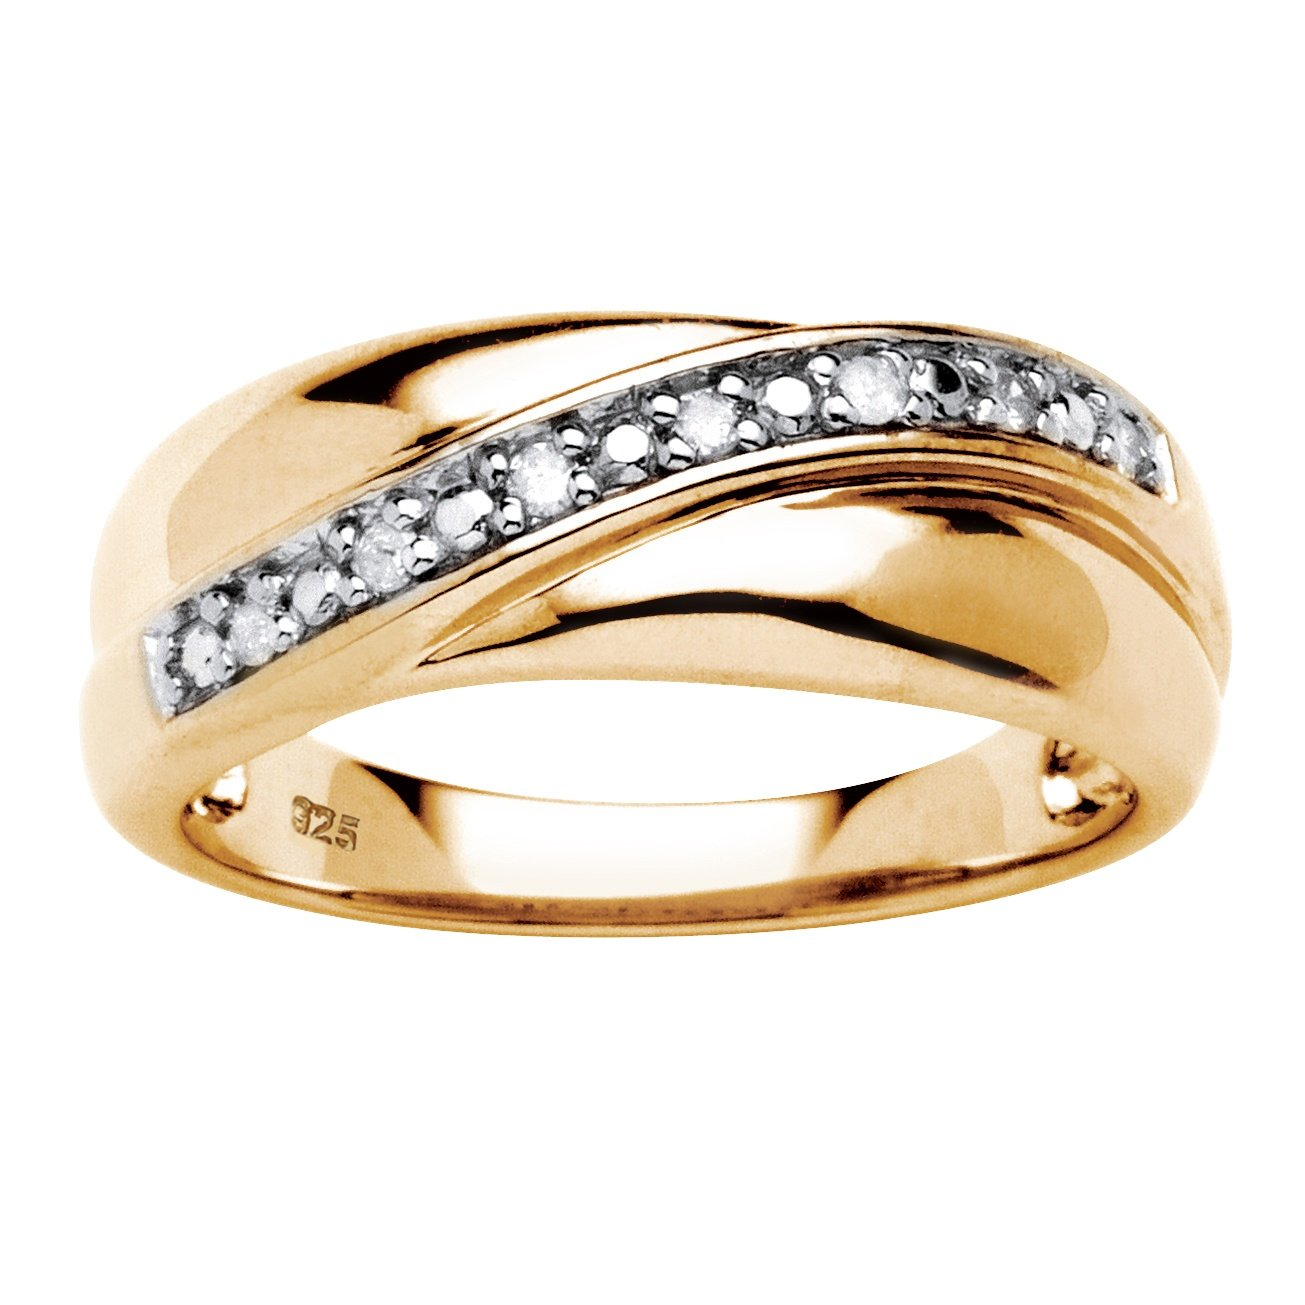 Men's 18K Gold over Sterling Silver 1/10 cttw Round Diamond Wedding Band Ring (HI Color, I3 Clarity) Size 11 by Palm Beach Jewelry